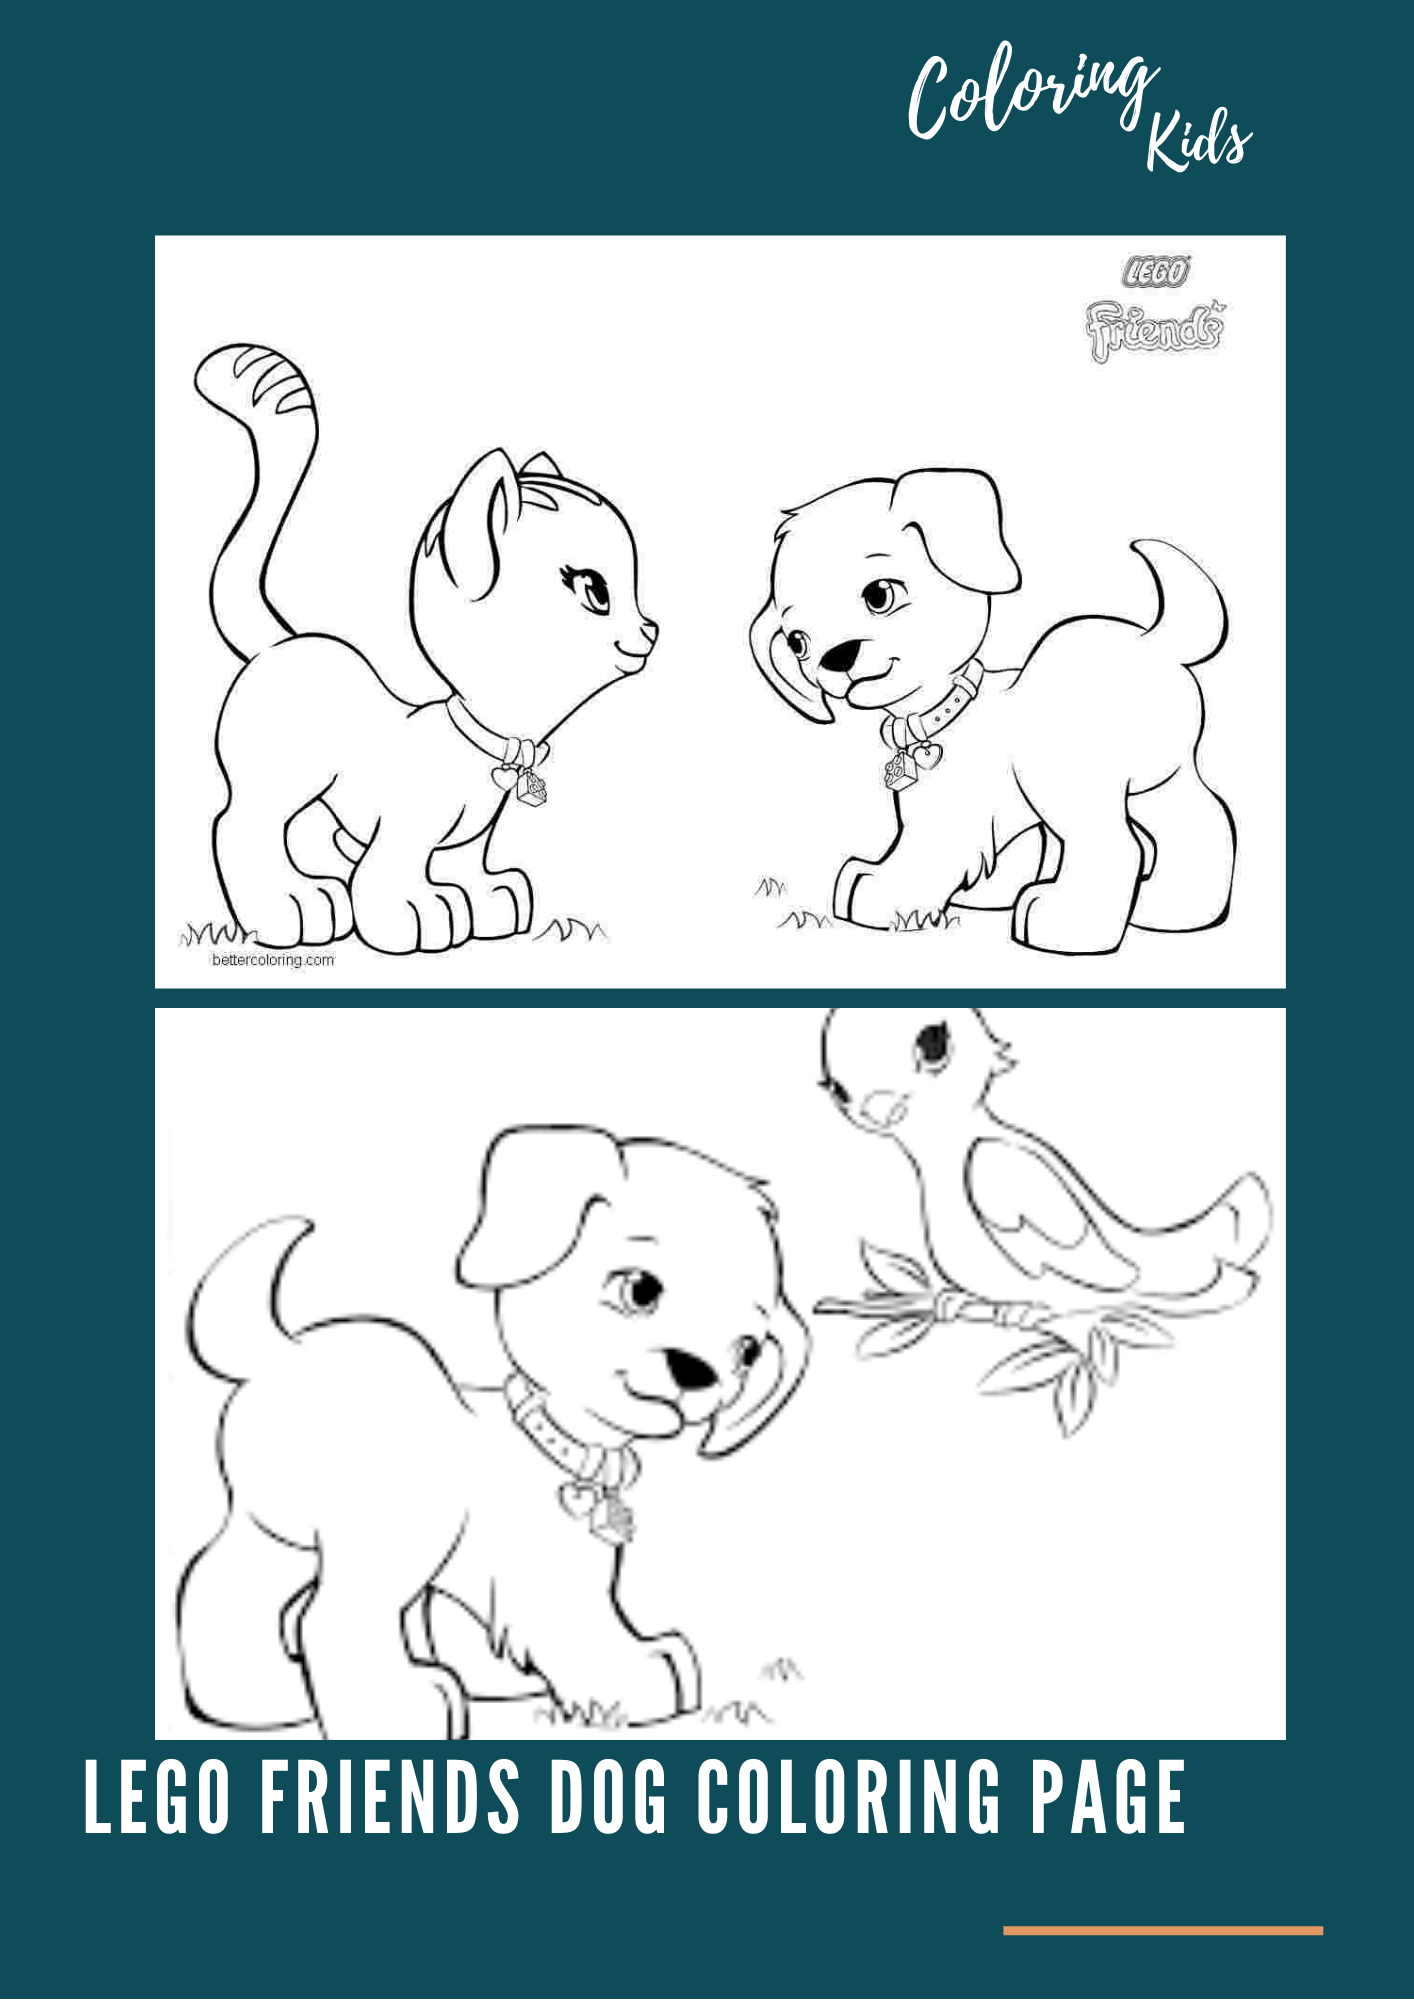 Lego Friends Dog Coloring Page